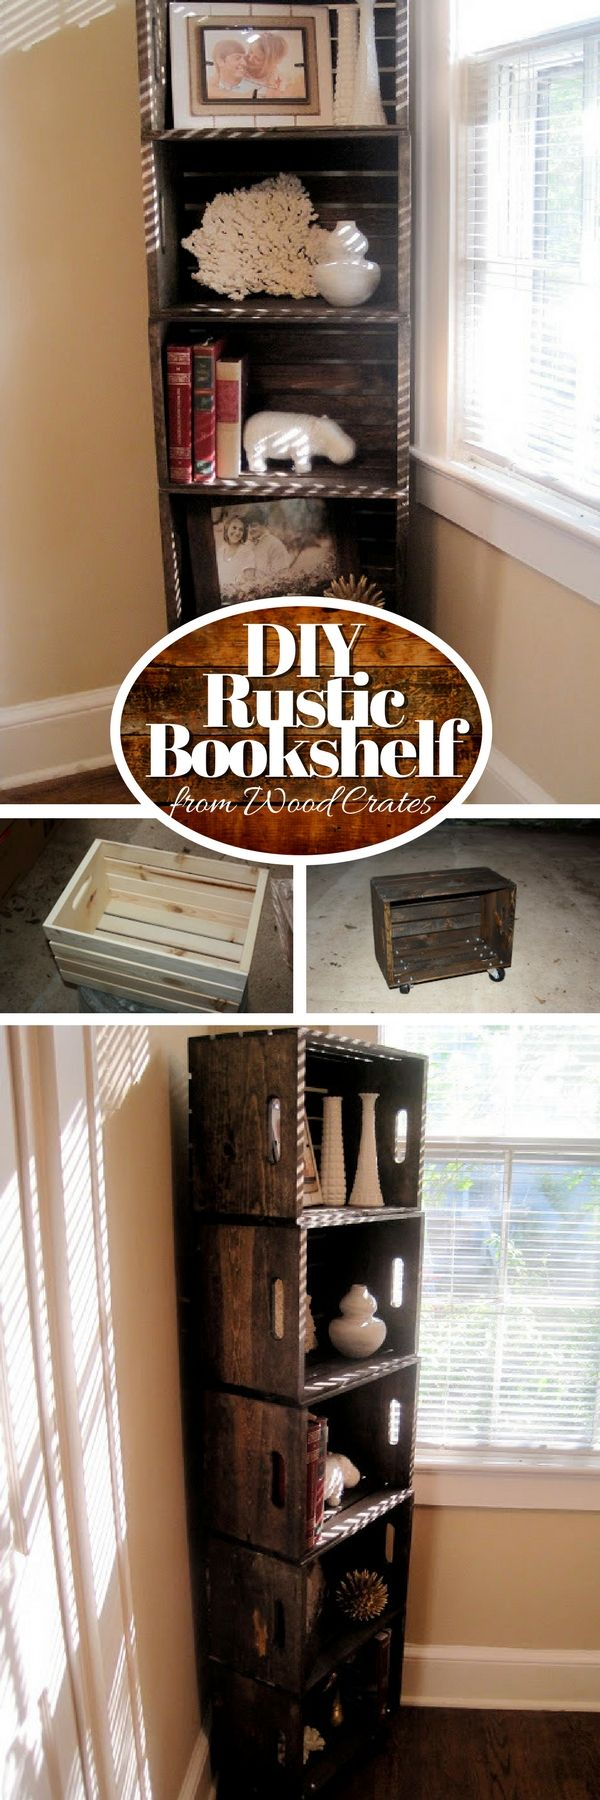 Check out how to build an easy DIY bookshelf from wood crates @istandarddesign